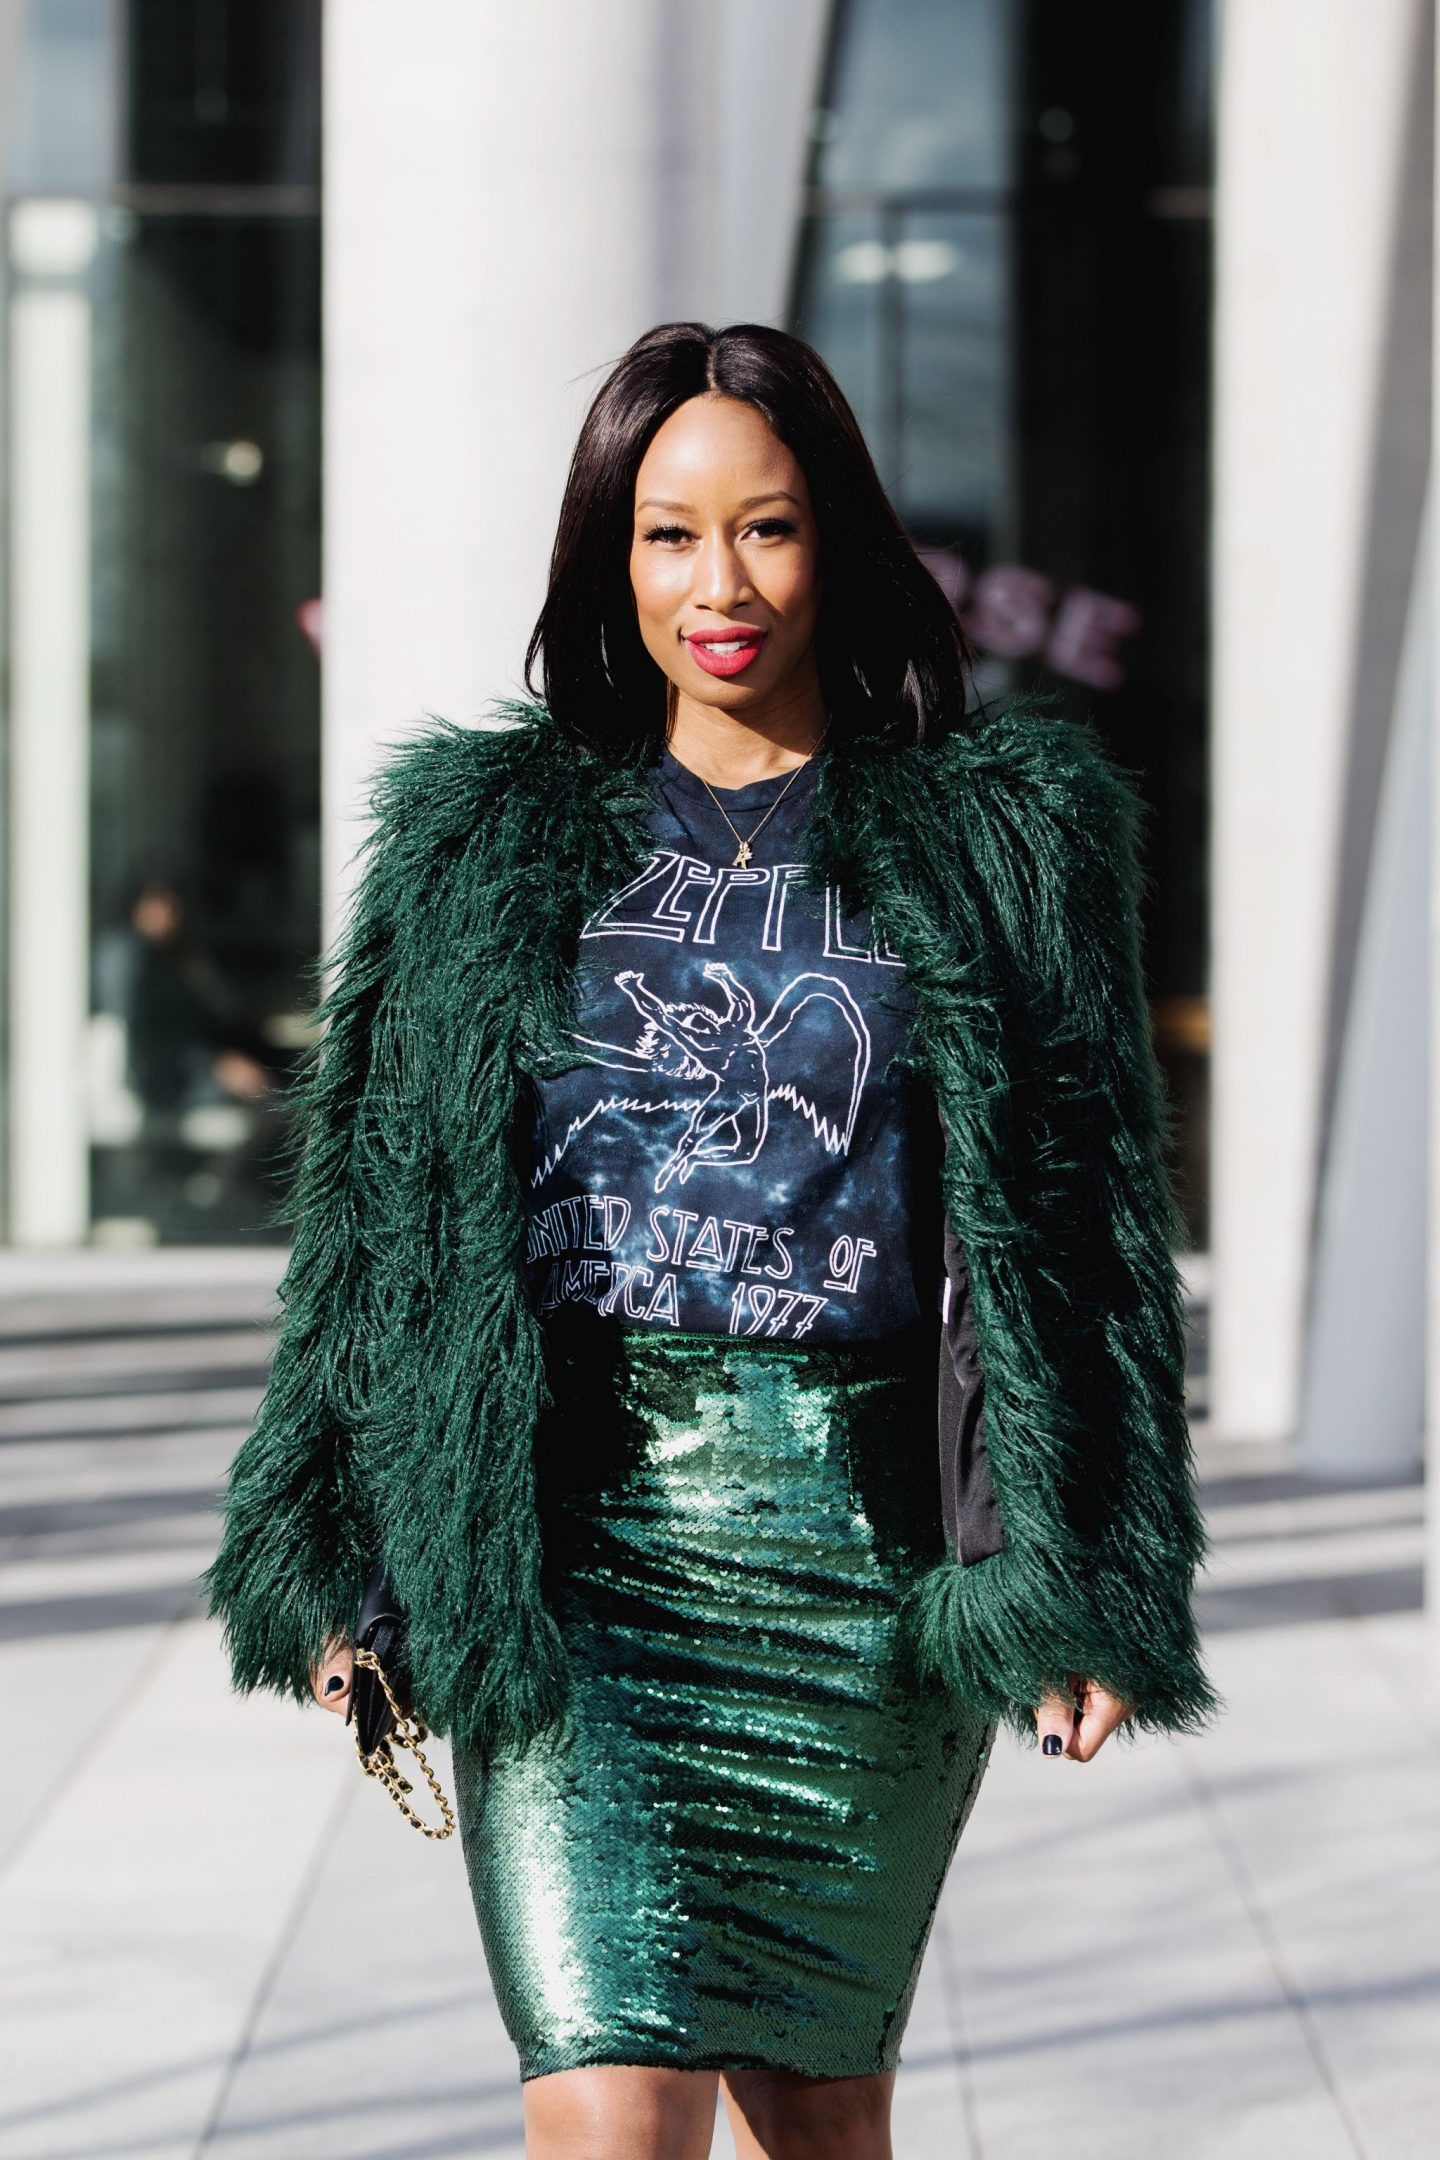 Fashion style How to sequin wear skirt in winter for girls